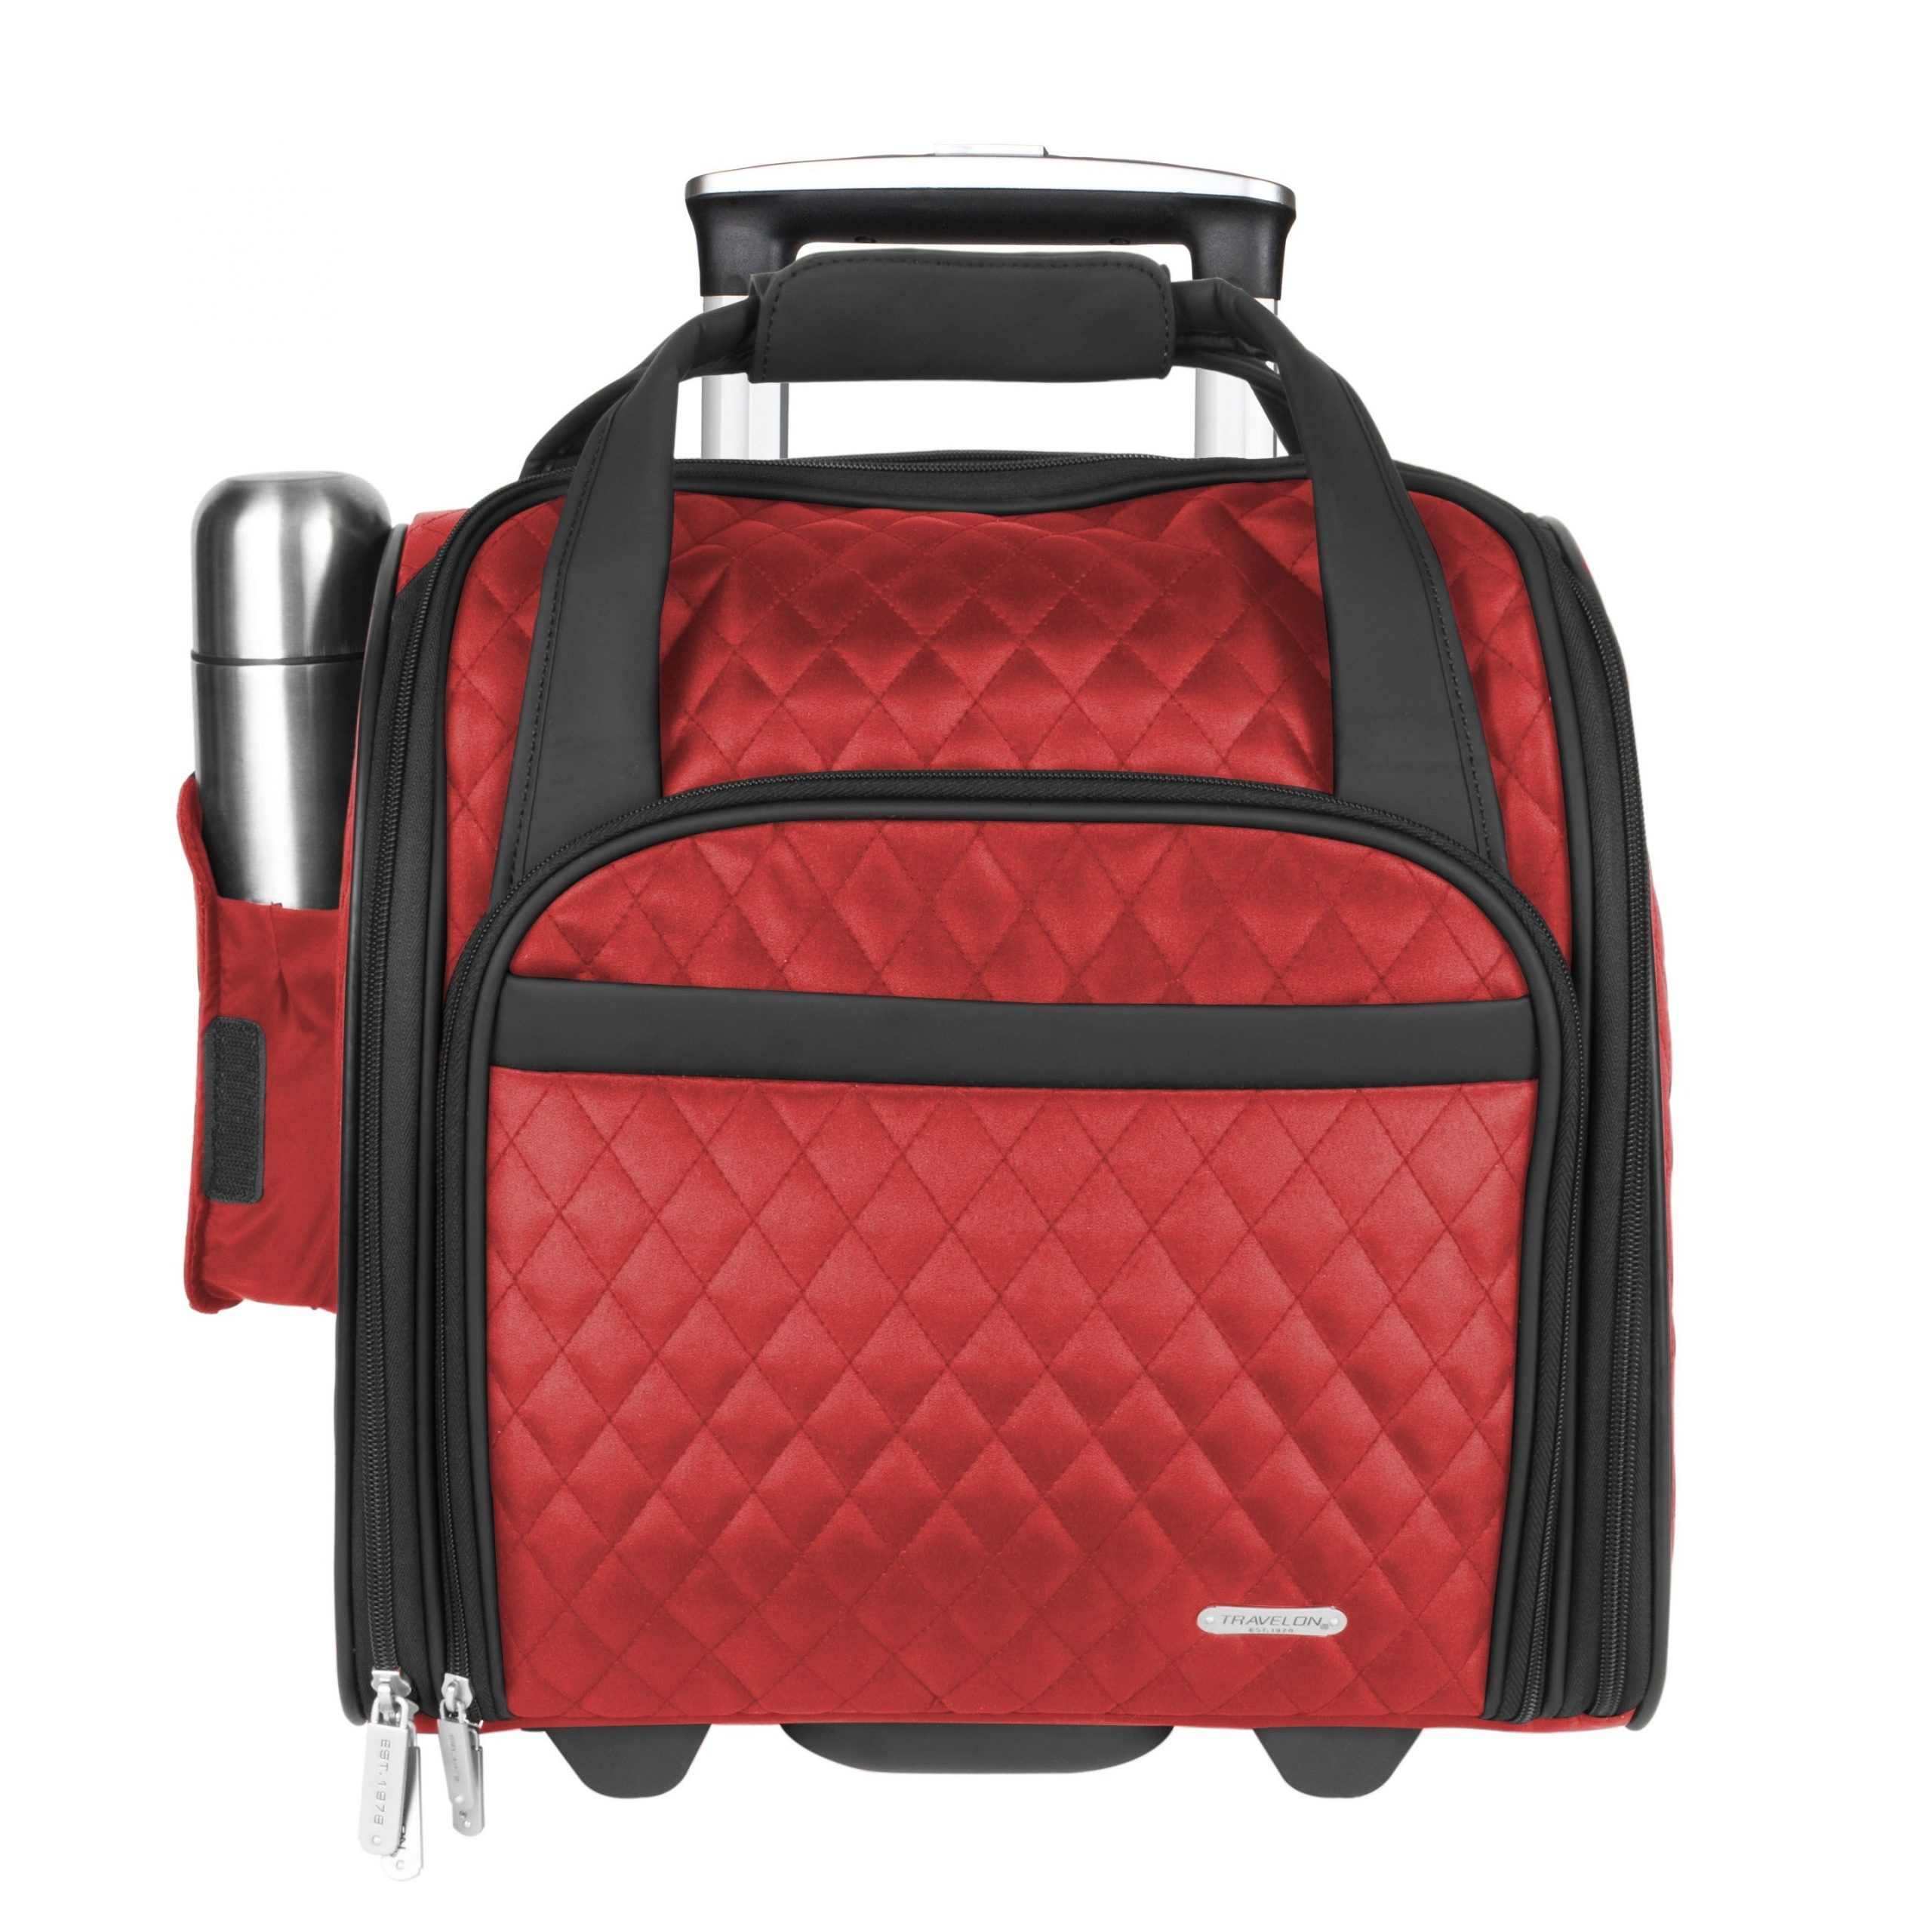 Travelon-Wheeled-Underseat-Carry-on-with-Back-up-Bag-e74ee586-87f0-469f-b3de-41151bad65d7